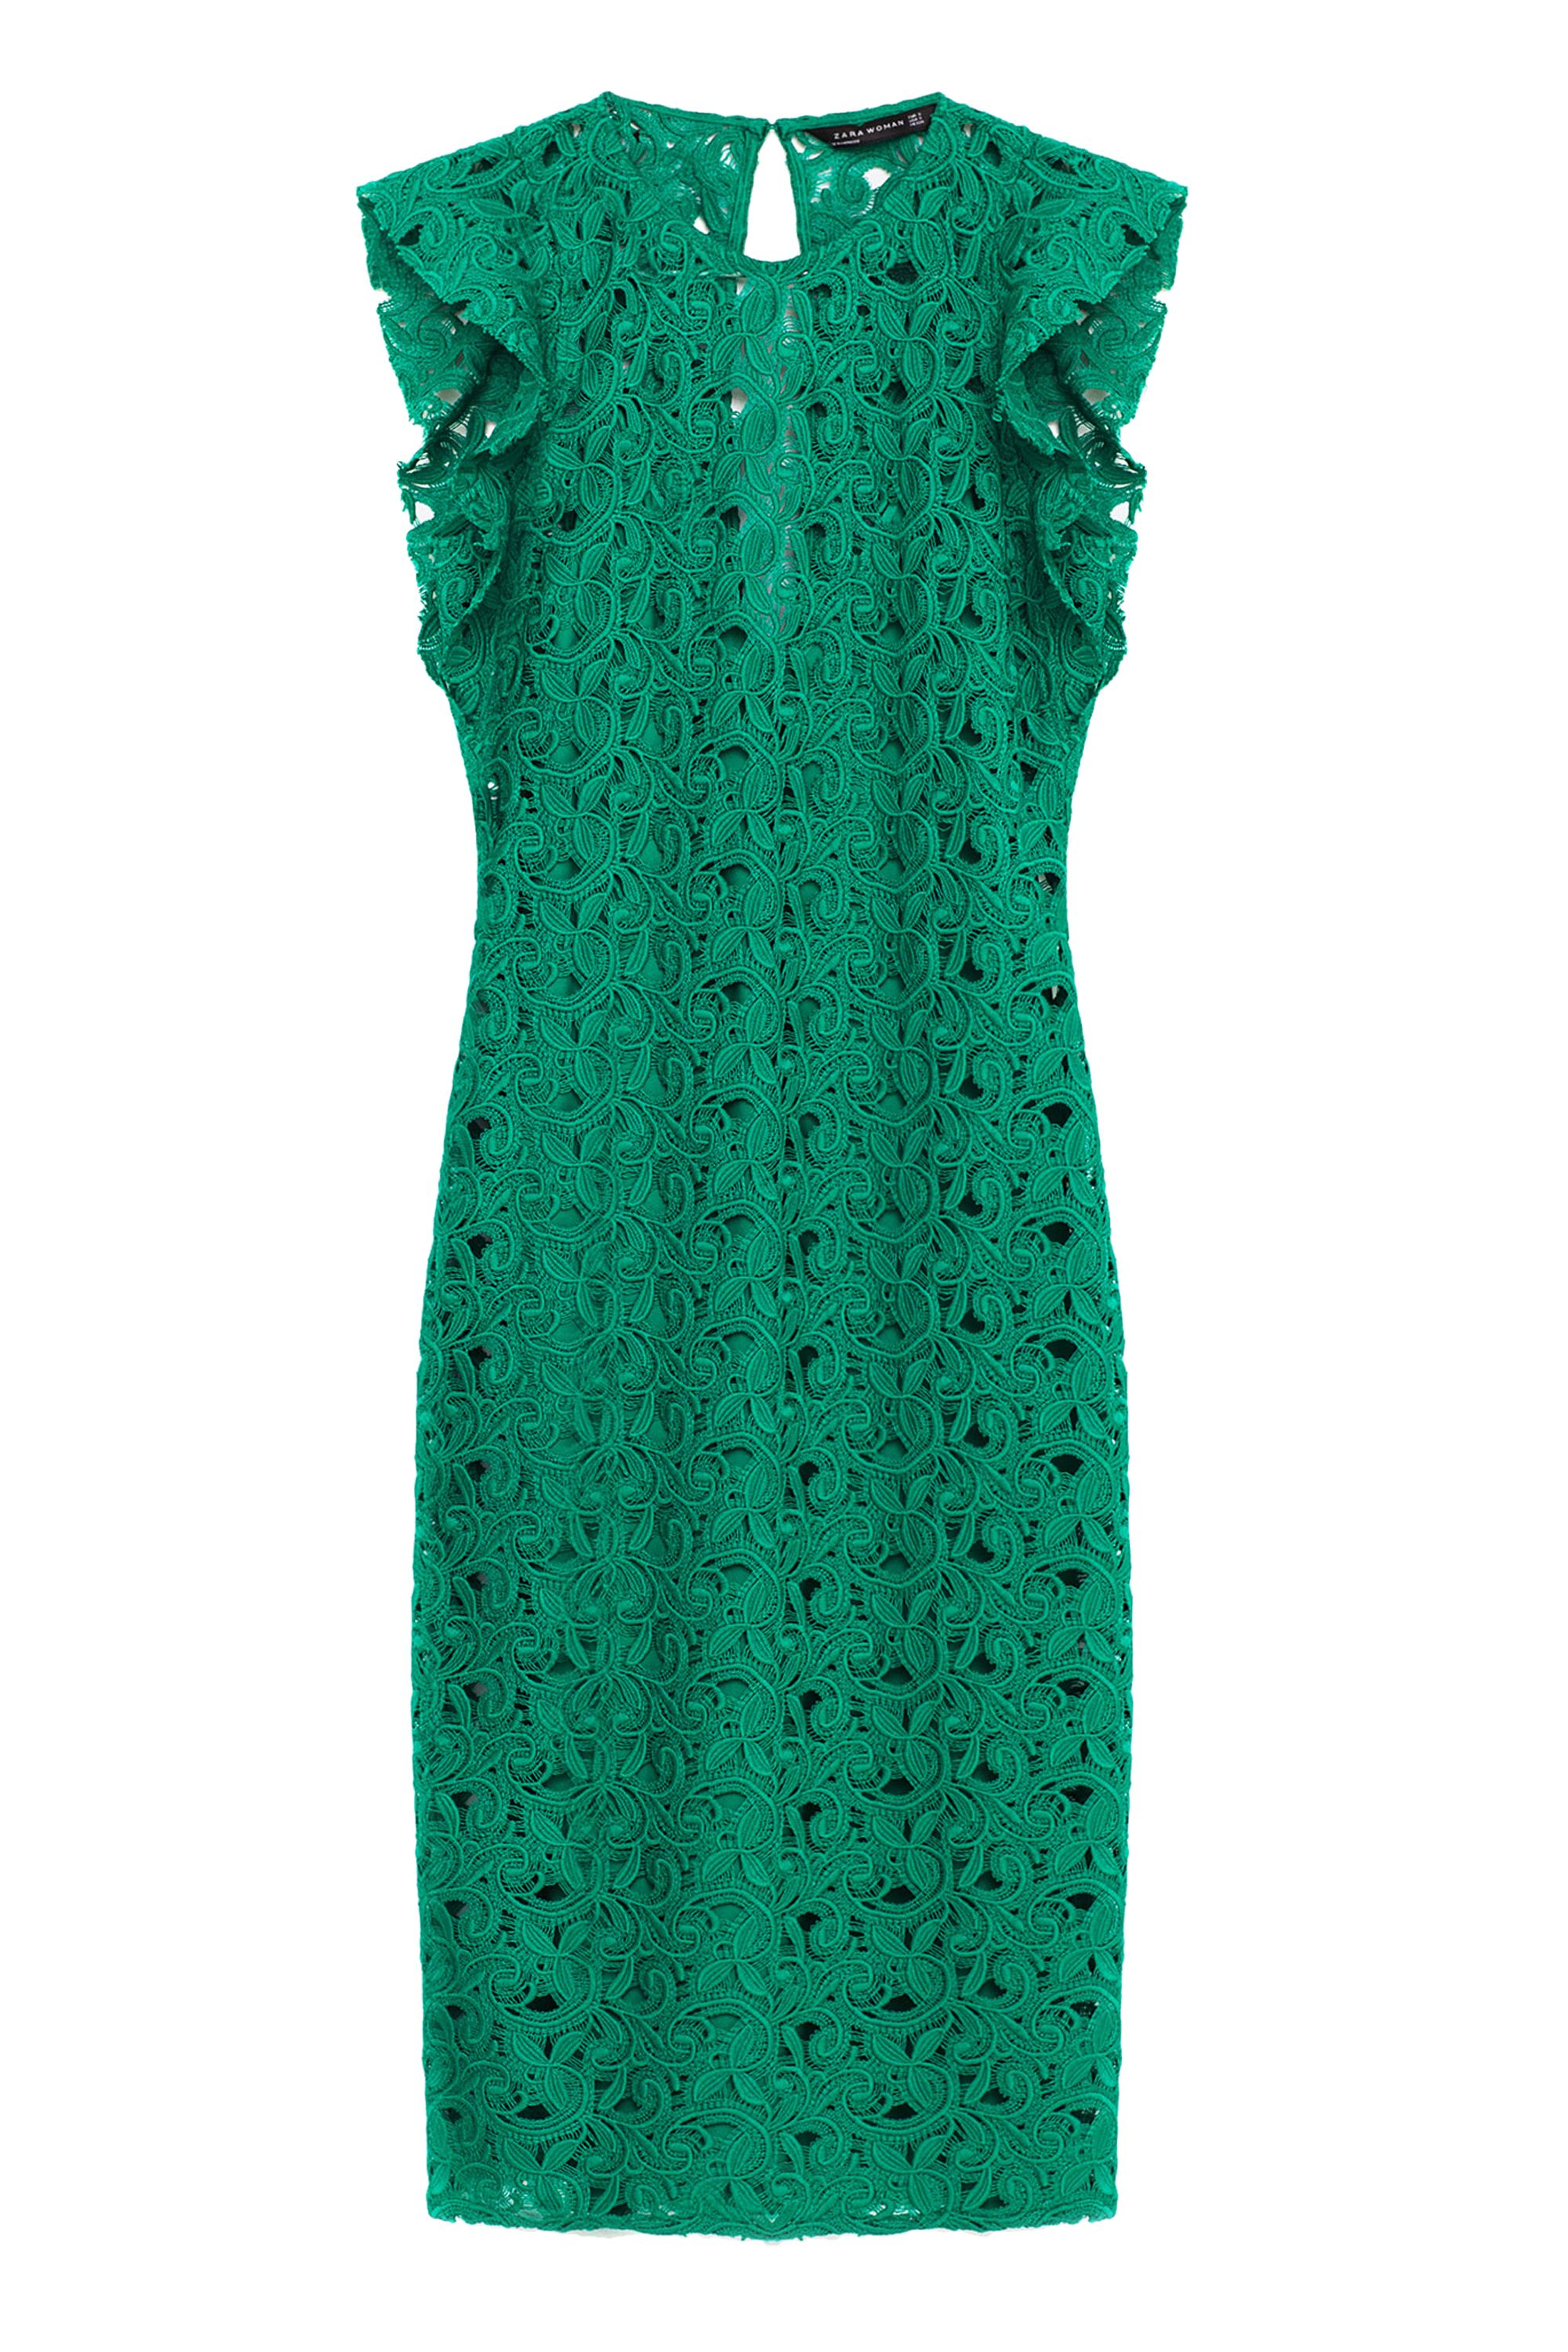 20 Lace Dresses for a Summer Party - Best Lace Dresses for Women 2016